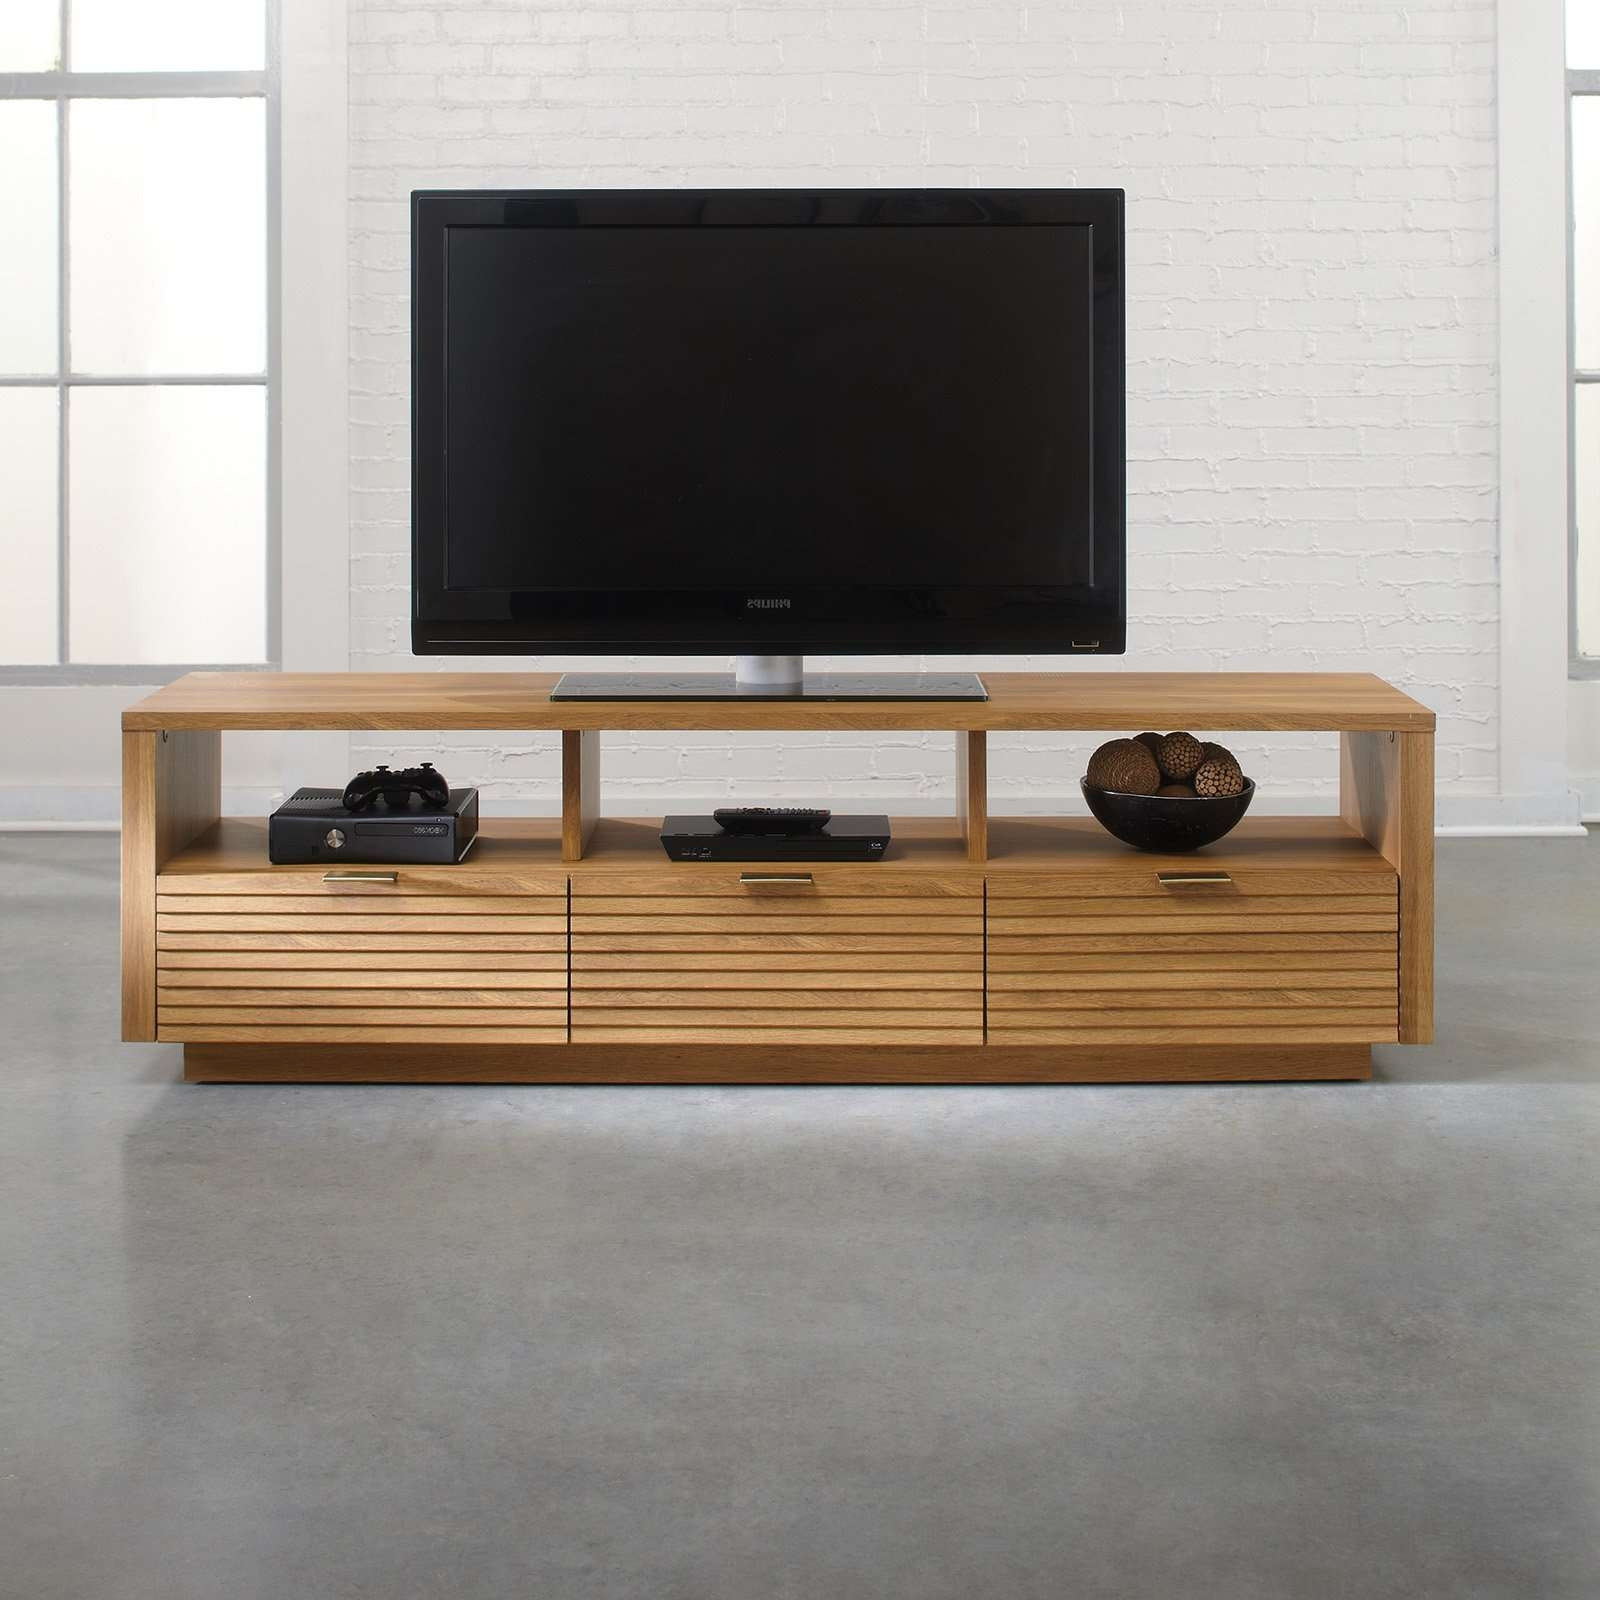 Best Hokku Designs Tv Stand 15 For Home Decorating Ideas With Inside Hokku Tv Stands (View 2 of 20)